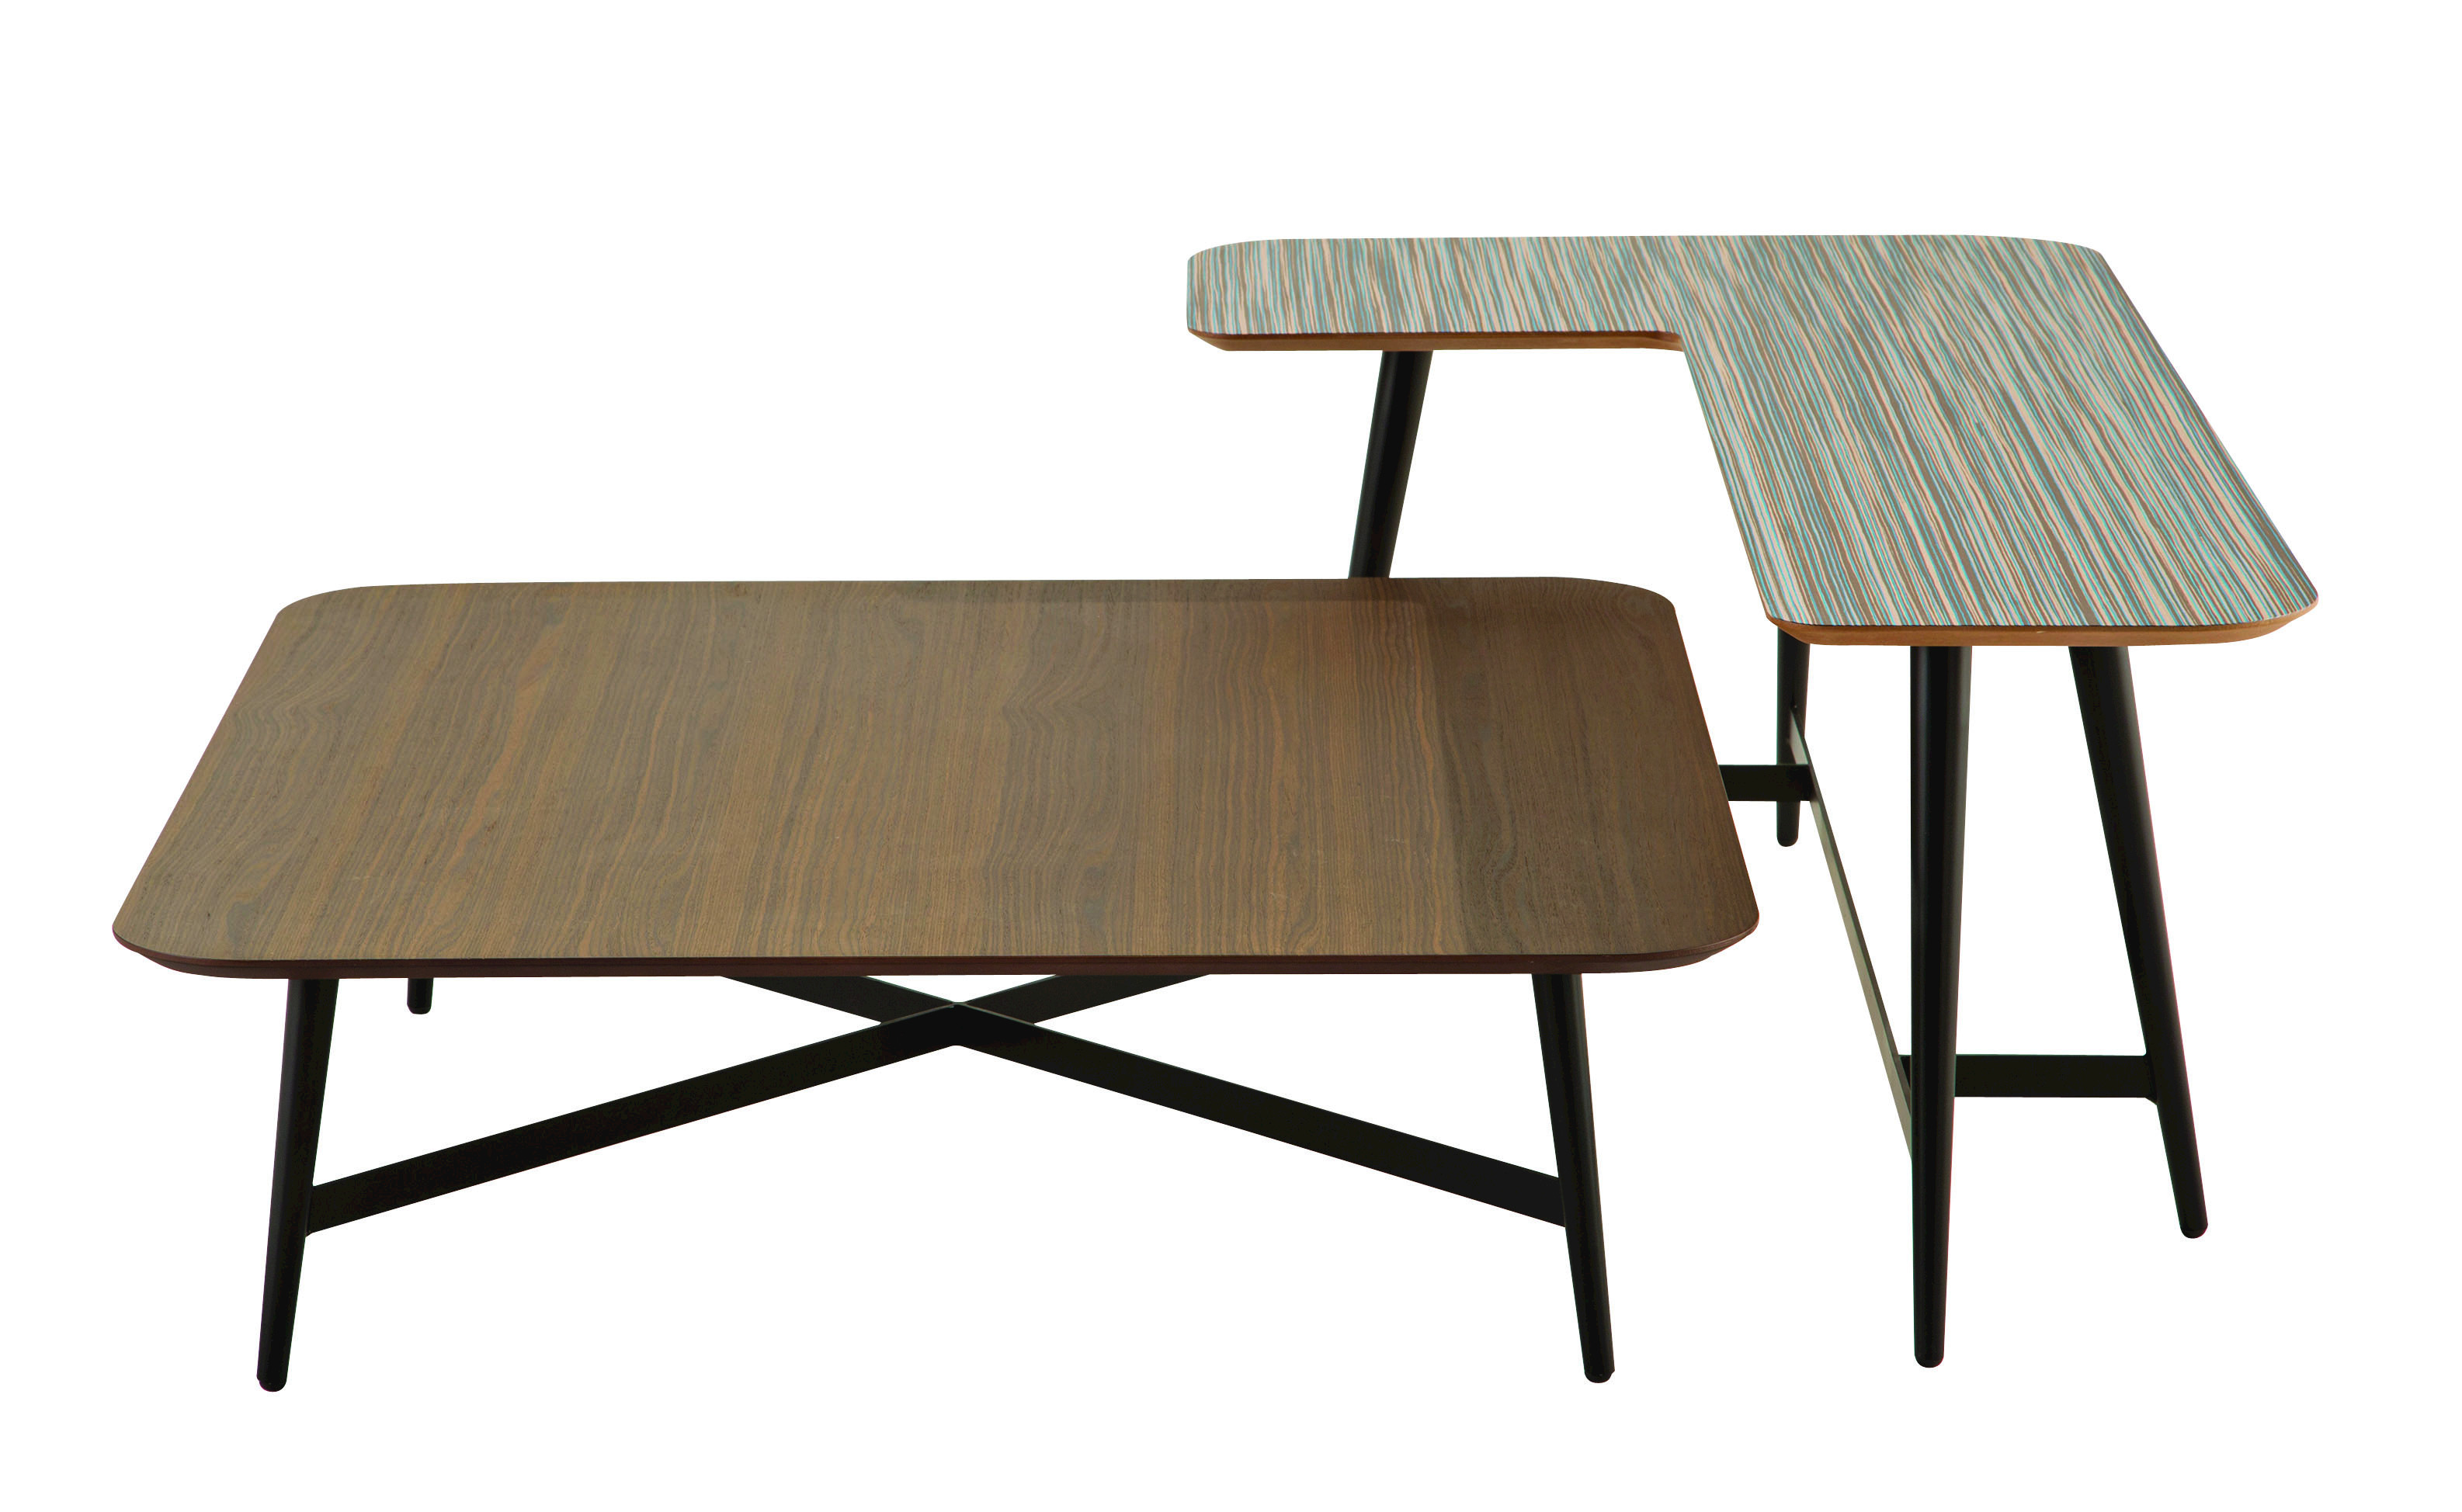 Table Basse Laqu E Carr E De Salon Octet Collection Les Contemporains By Roche Bobois Design